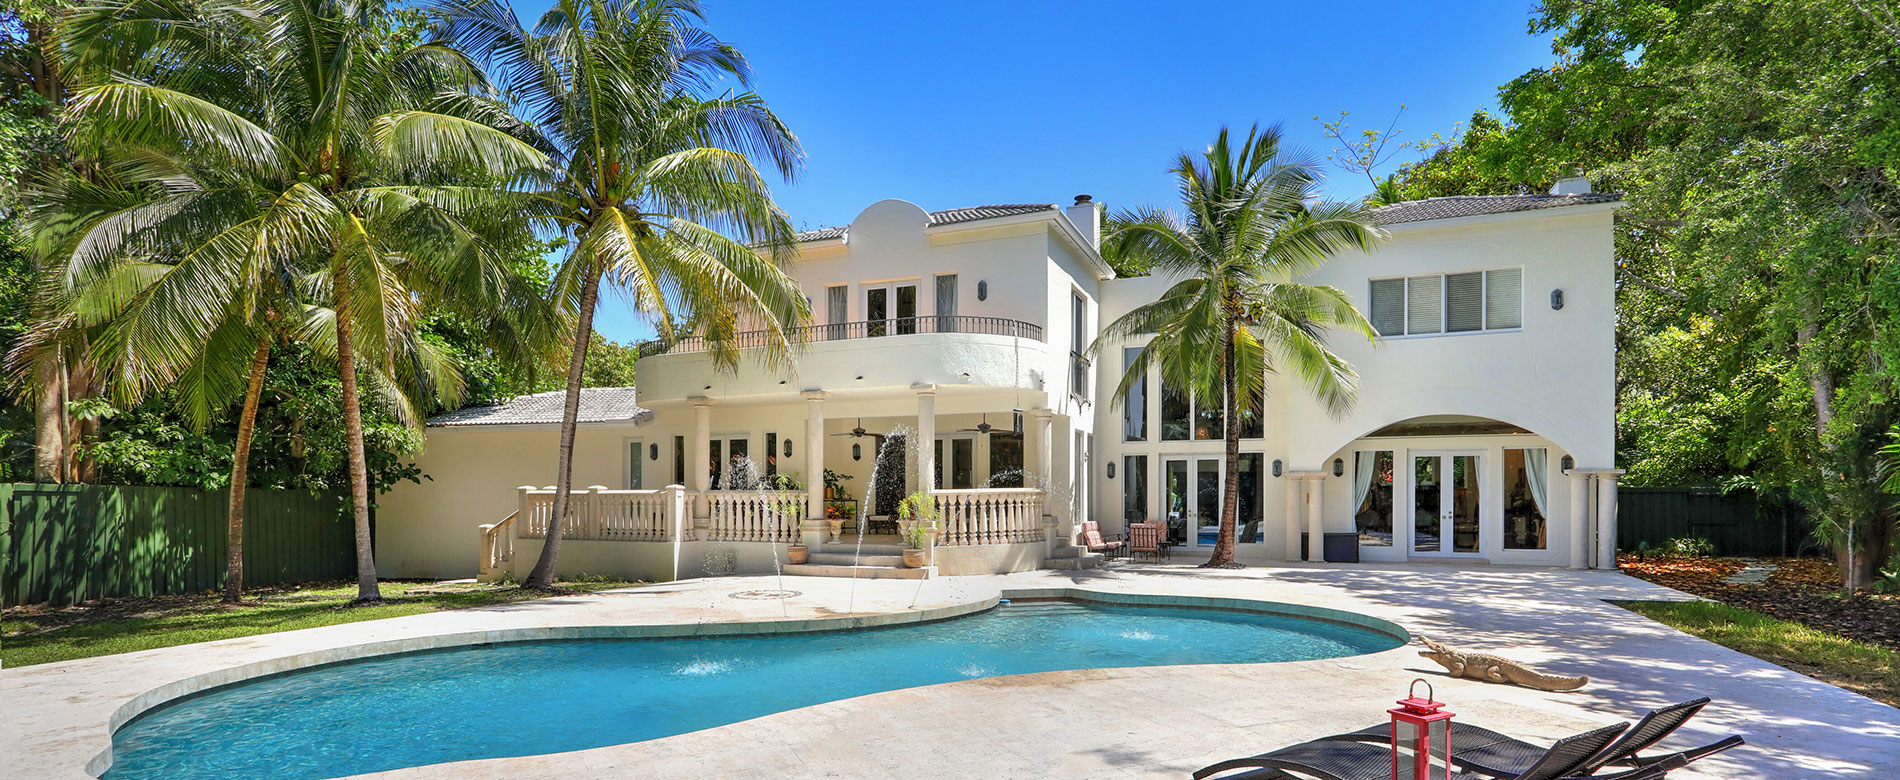 Coral Gables Luxury Home for Sale